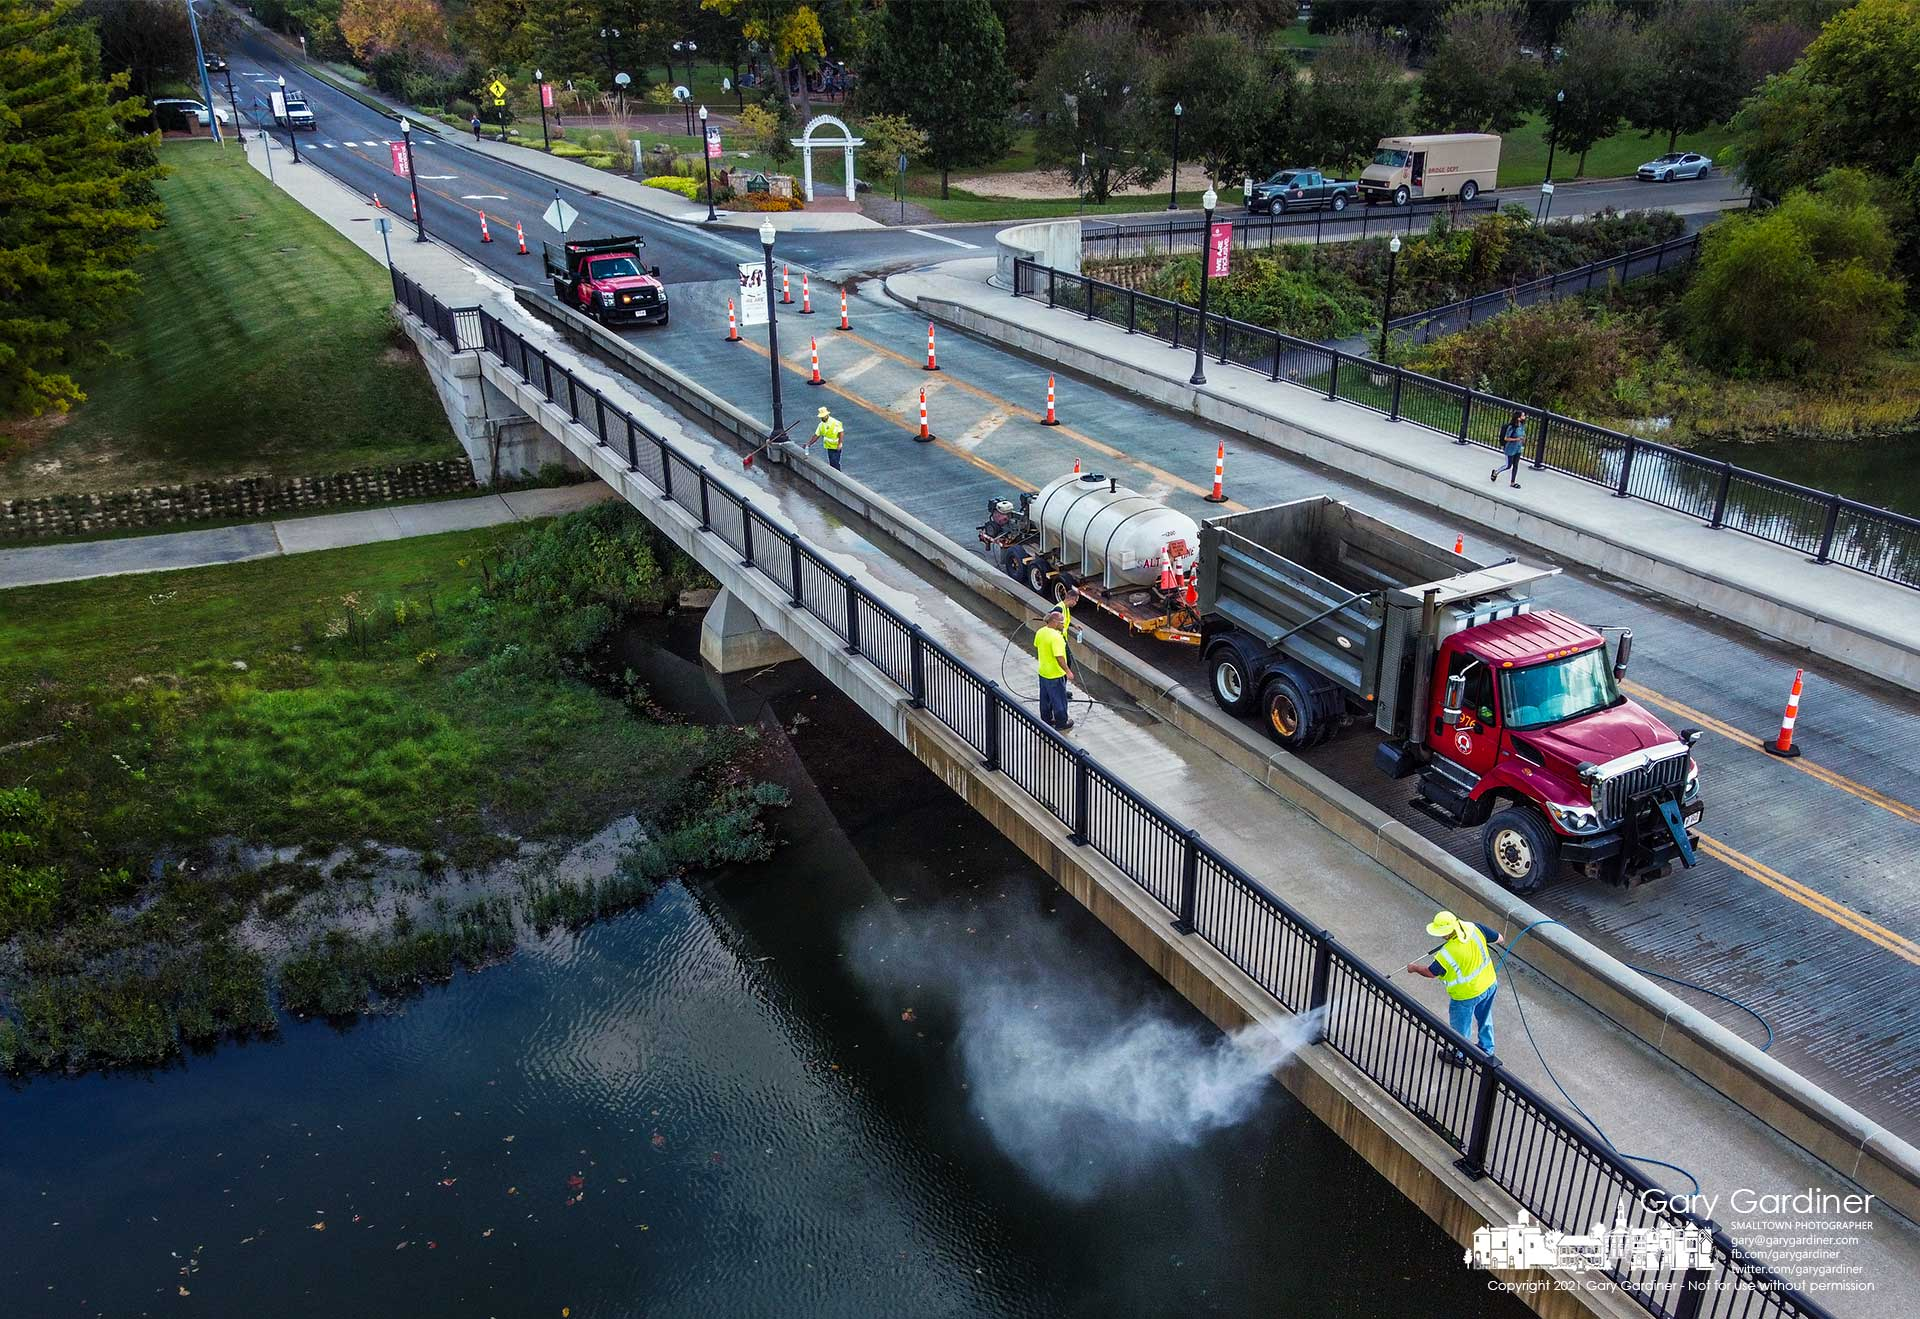 A Franklin County work crew pressure washes the Main Street bridge sidewalks and railing in preparation for sealing the sidewalks on the 10-year-old bridge. My Final Photo for Oct.14, 2021.